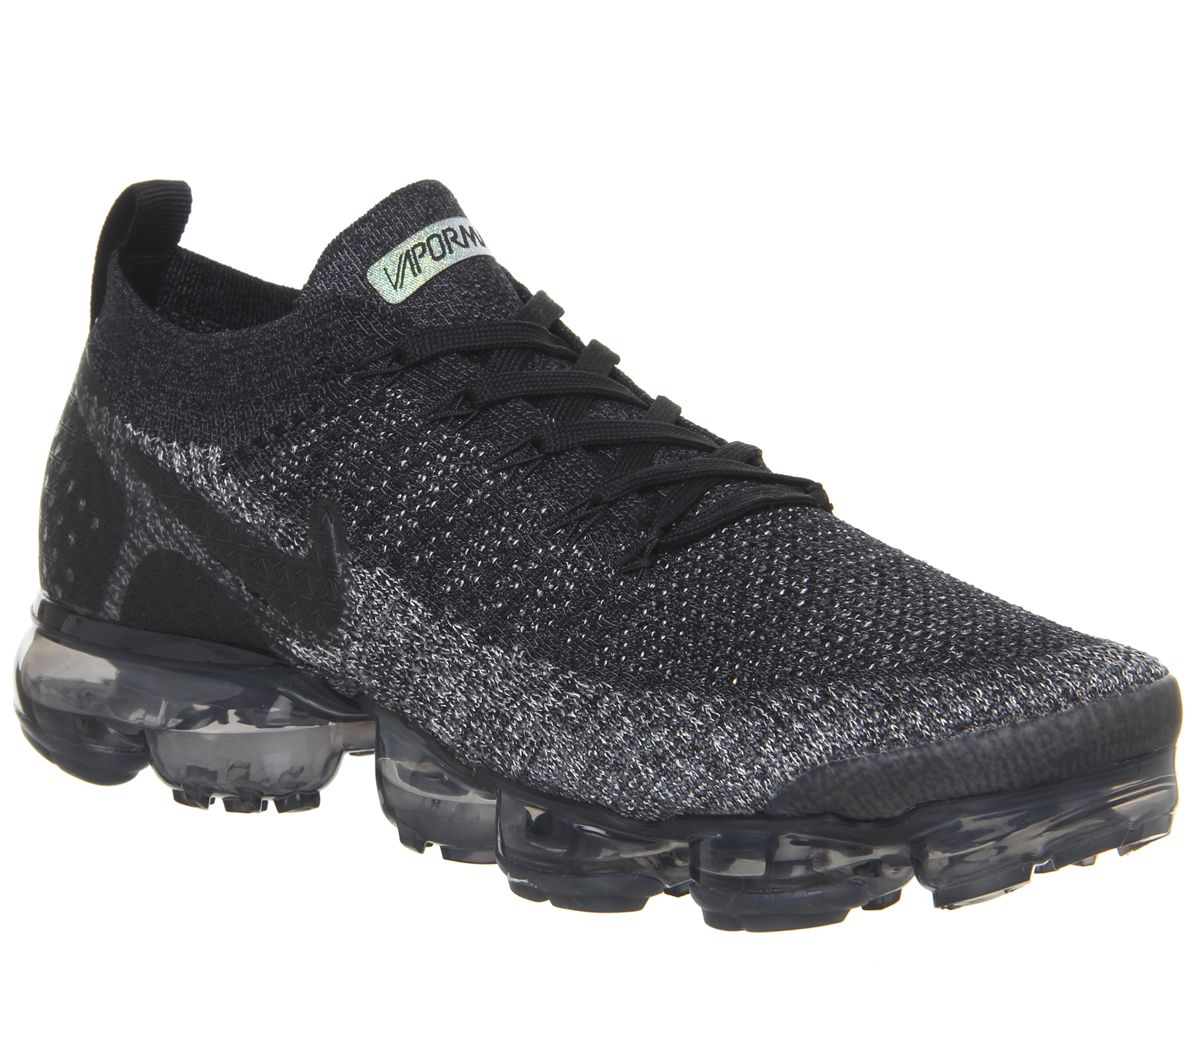 2bb5ce2575c Nike Vapormax, Air Vapormax Flyknit 2 Trainers, Black Black Dark Grey  Anthracite